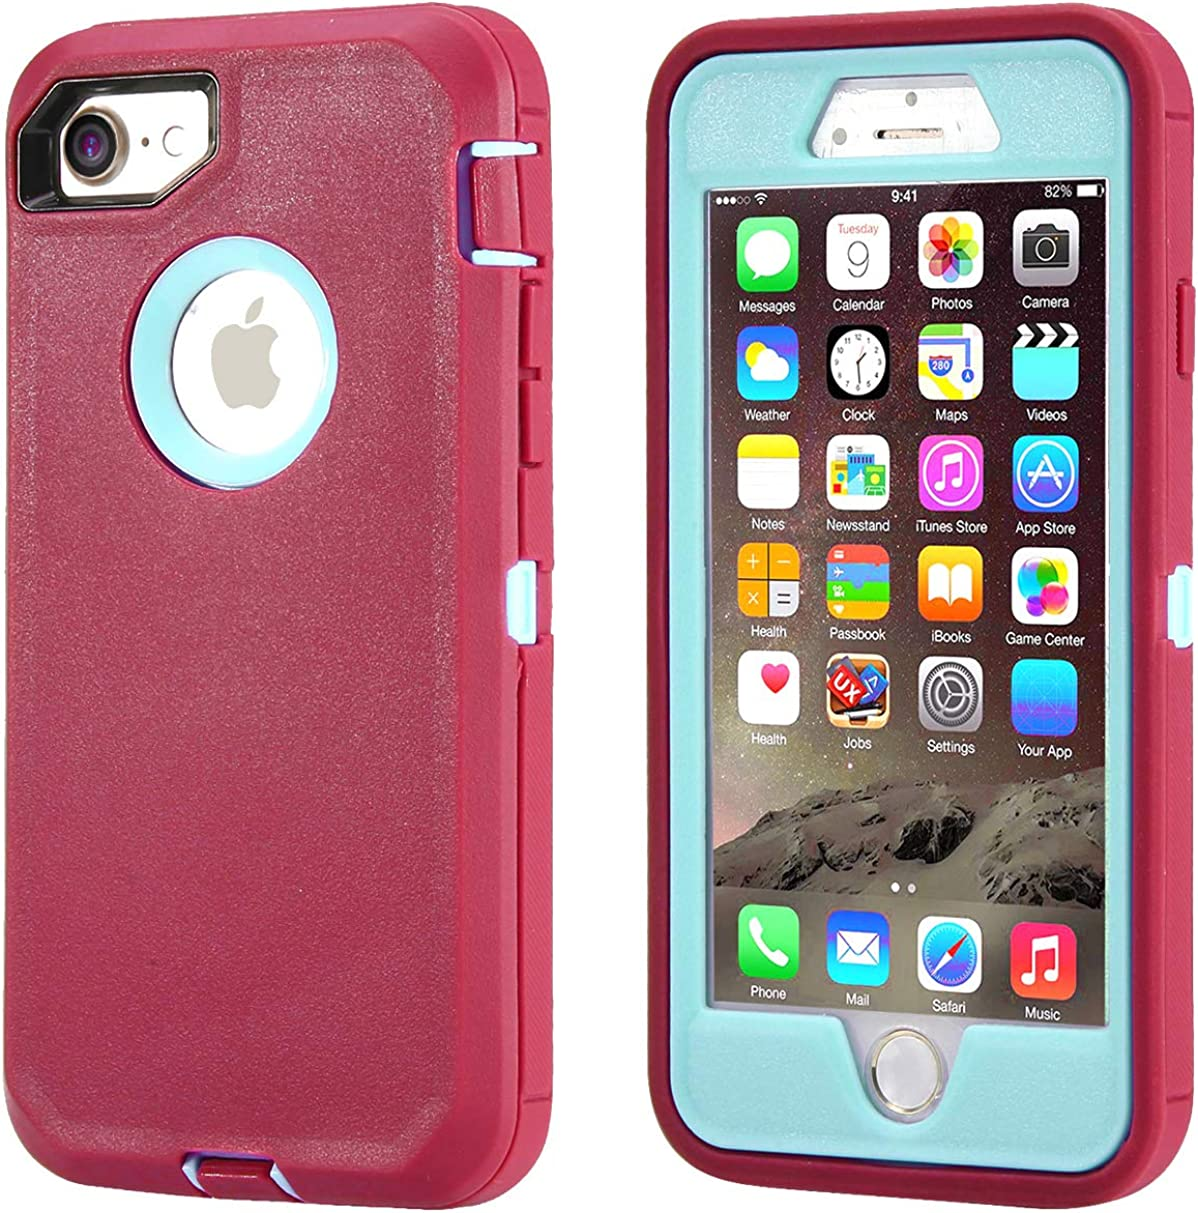 Annymall Case Compatible for iPhone 8 & iPhone 7, Heavy Duty [with Kickstand] [Built-in Screen Protector] Tough 4 in1 Rugged Shorkproof Cover for Apple iPhone 7 / iPhone 8